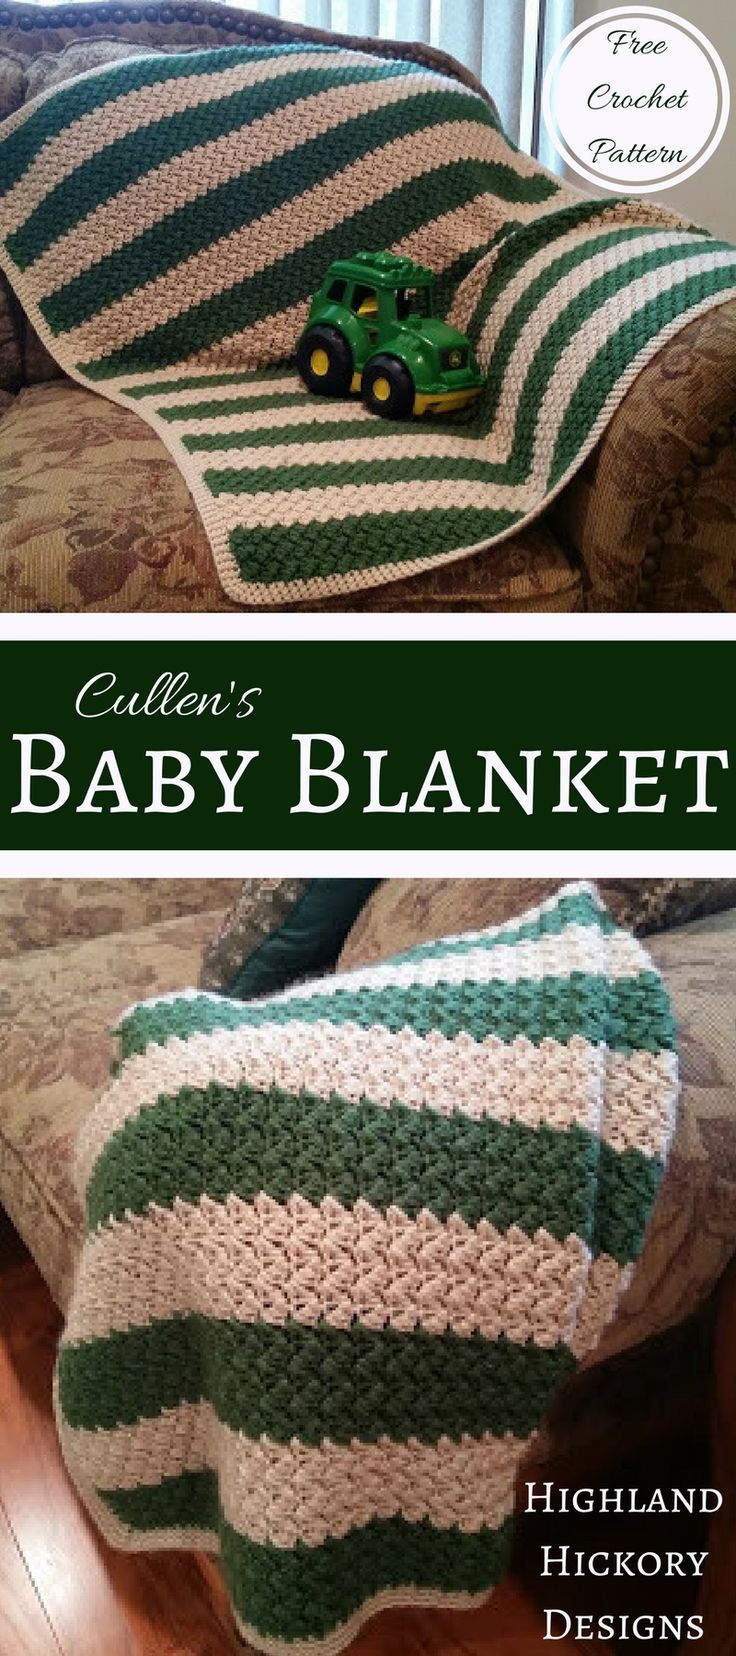 Cullens baby blanket blanket crochet and free crochet cullens baby blanket bankloansurffo Images